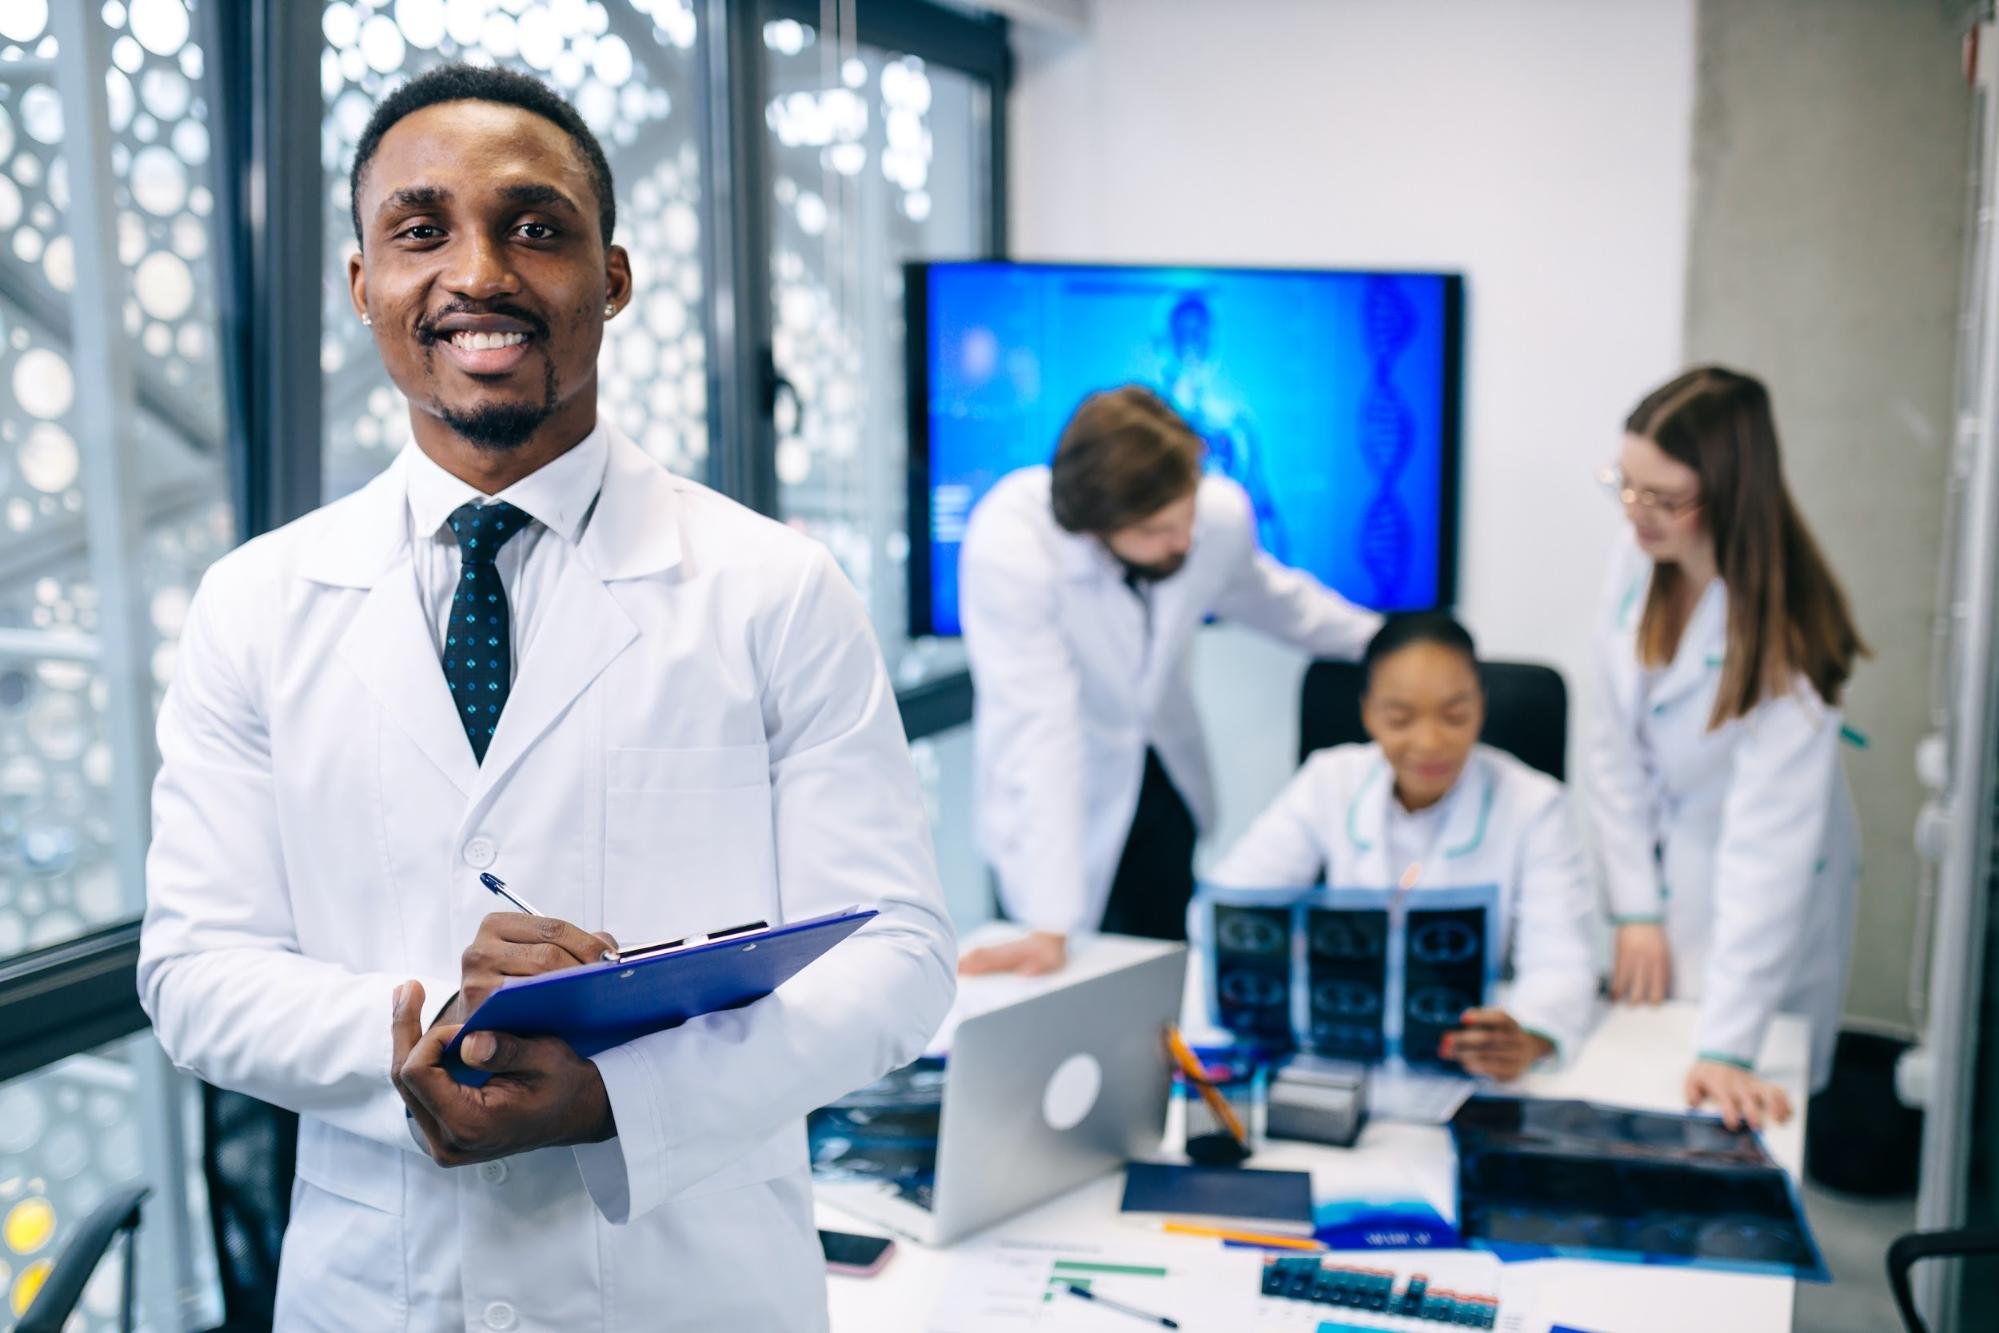 Man in lab coat standing in office with co-workers looking brain scans in background